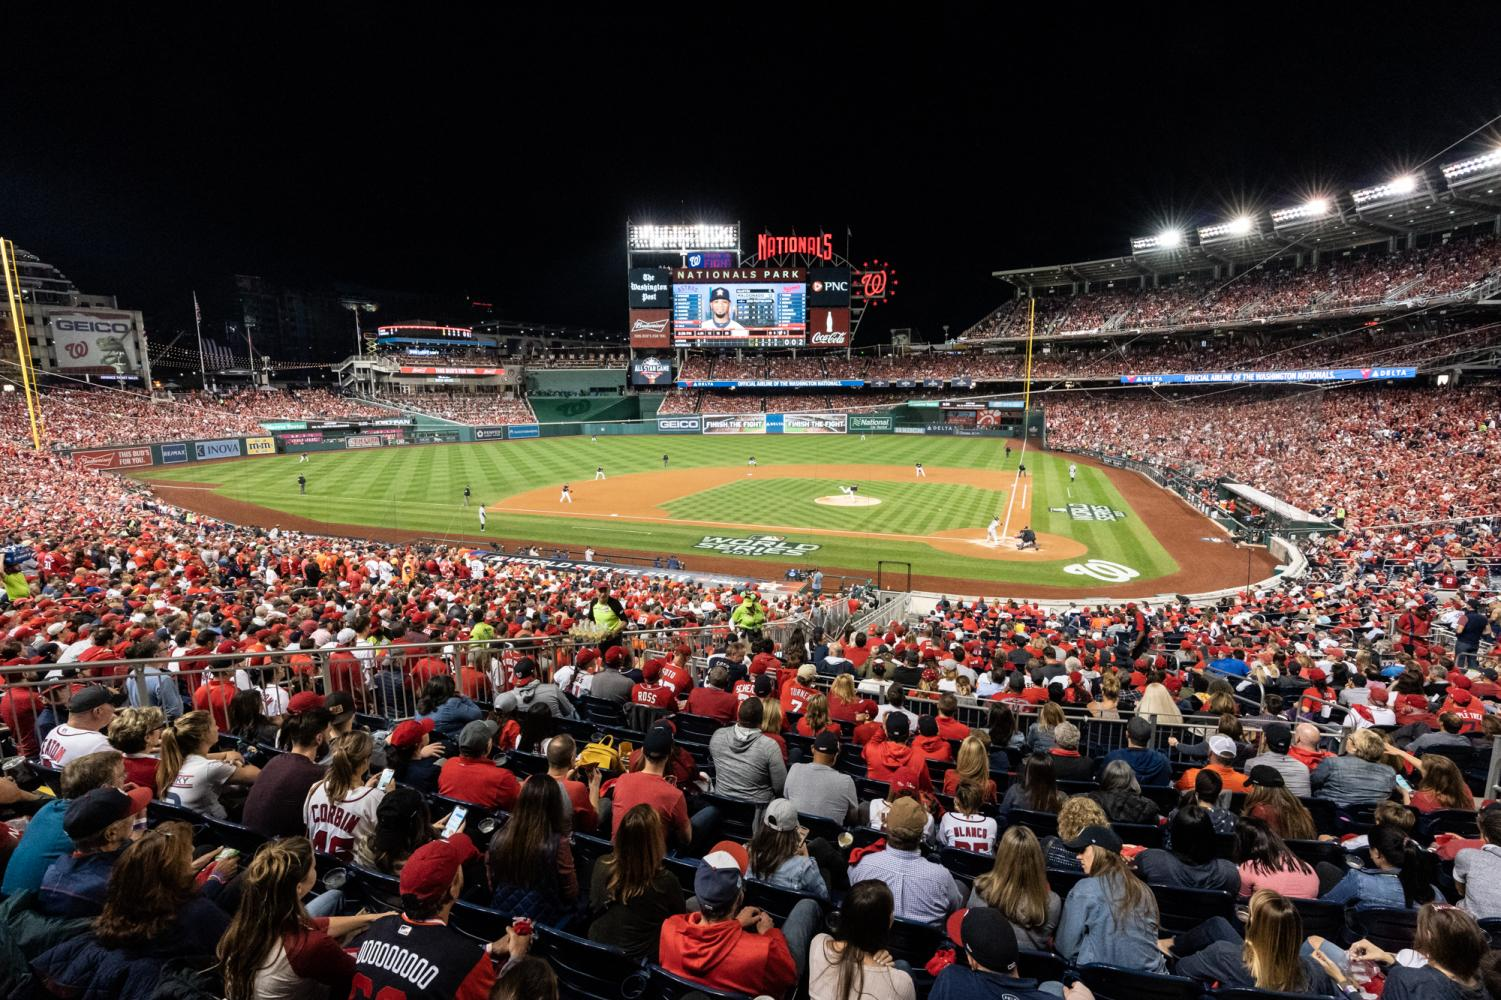 Nationals Park during Game 5 of the 2019 World Series